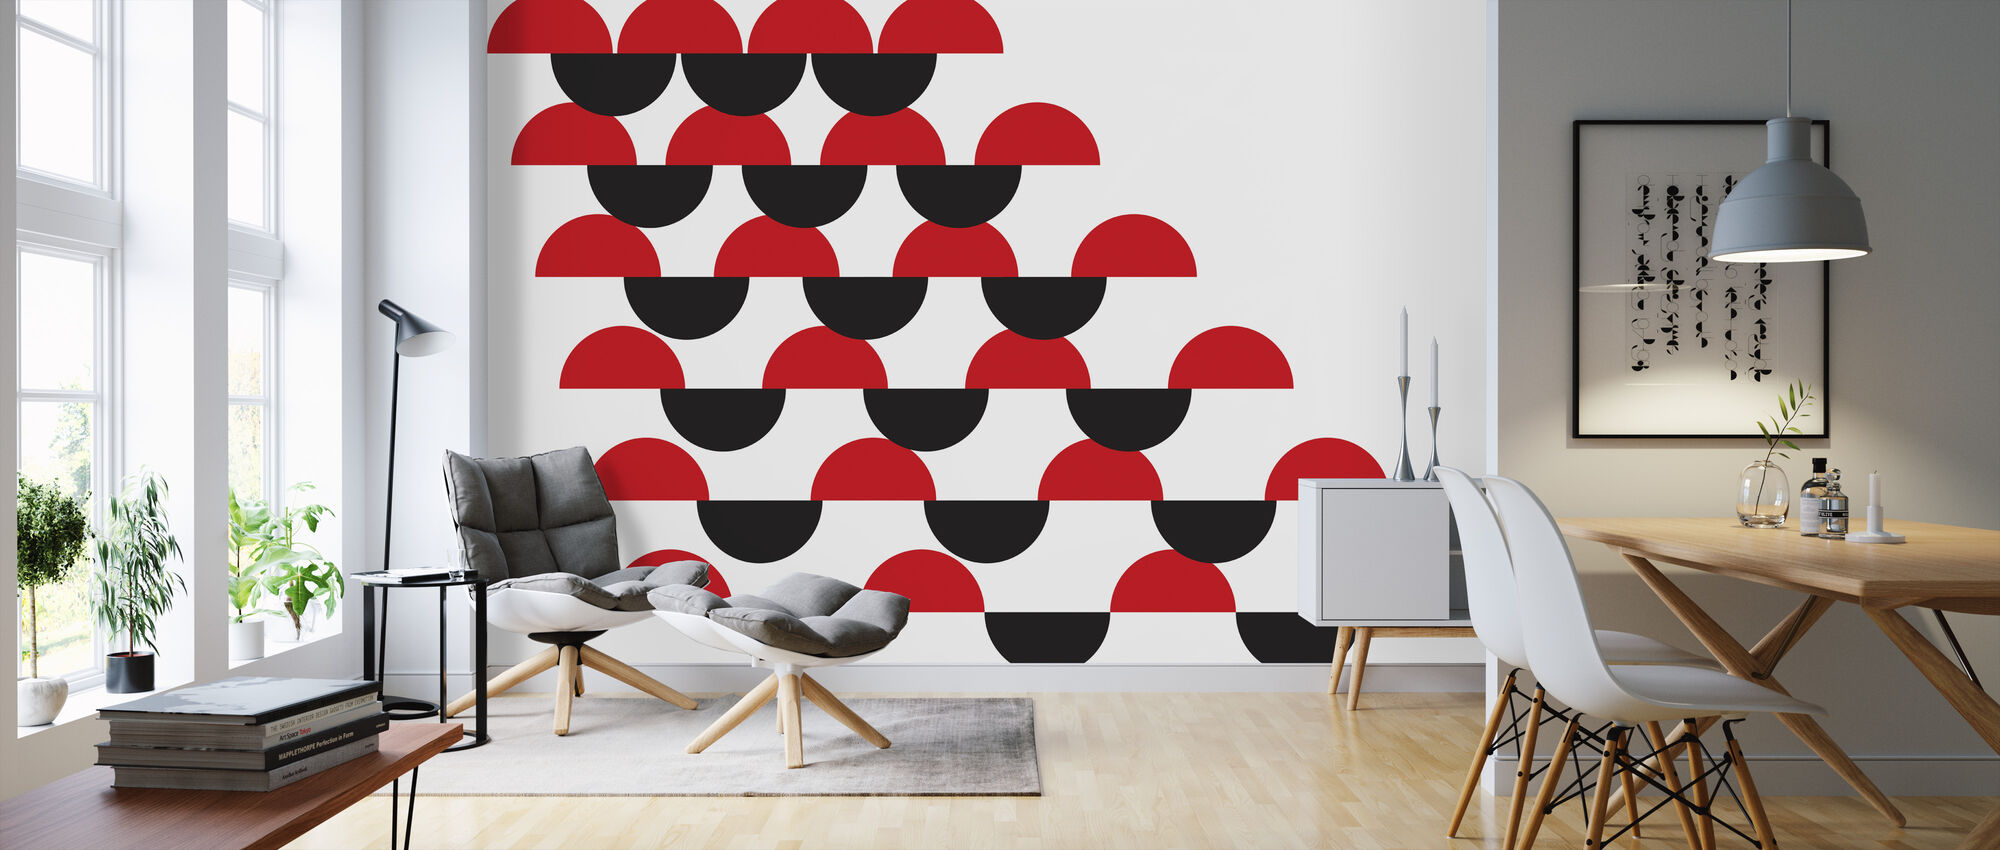 Habana Red and Black - Wallpaper - Living Room